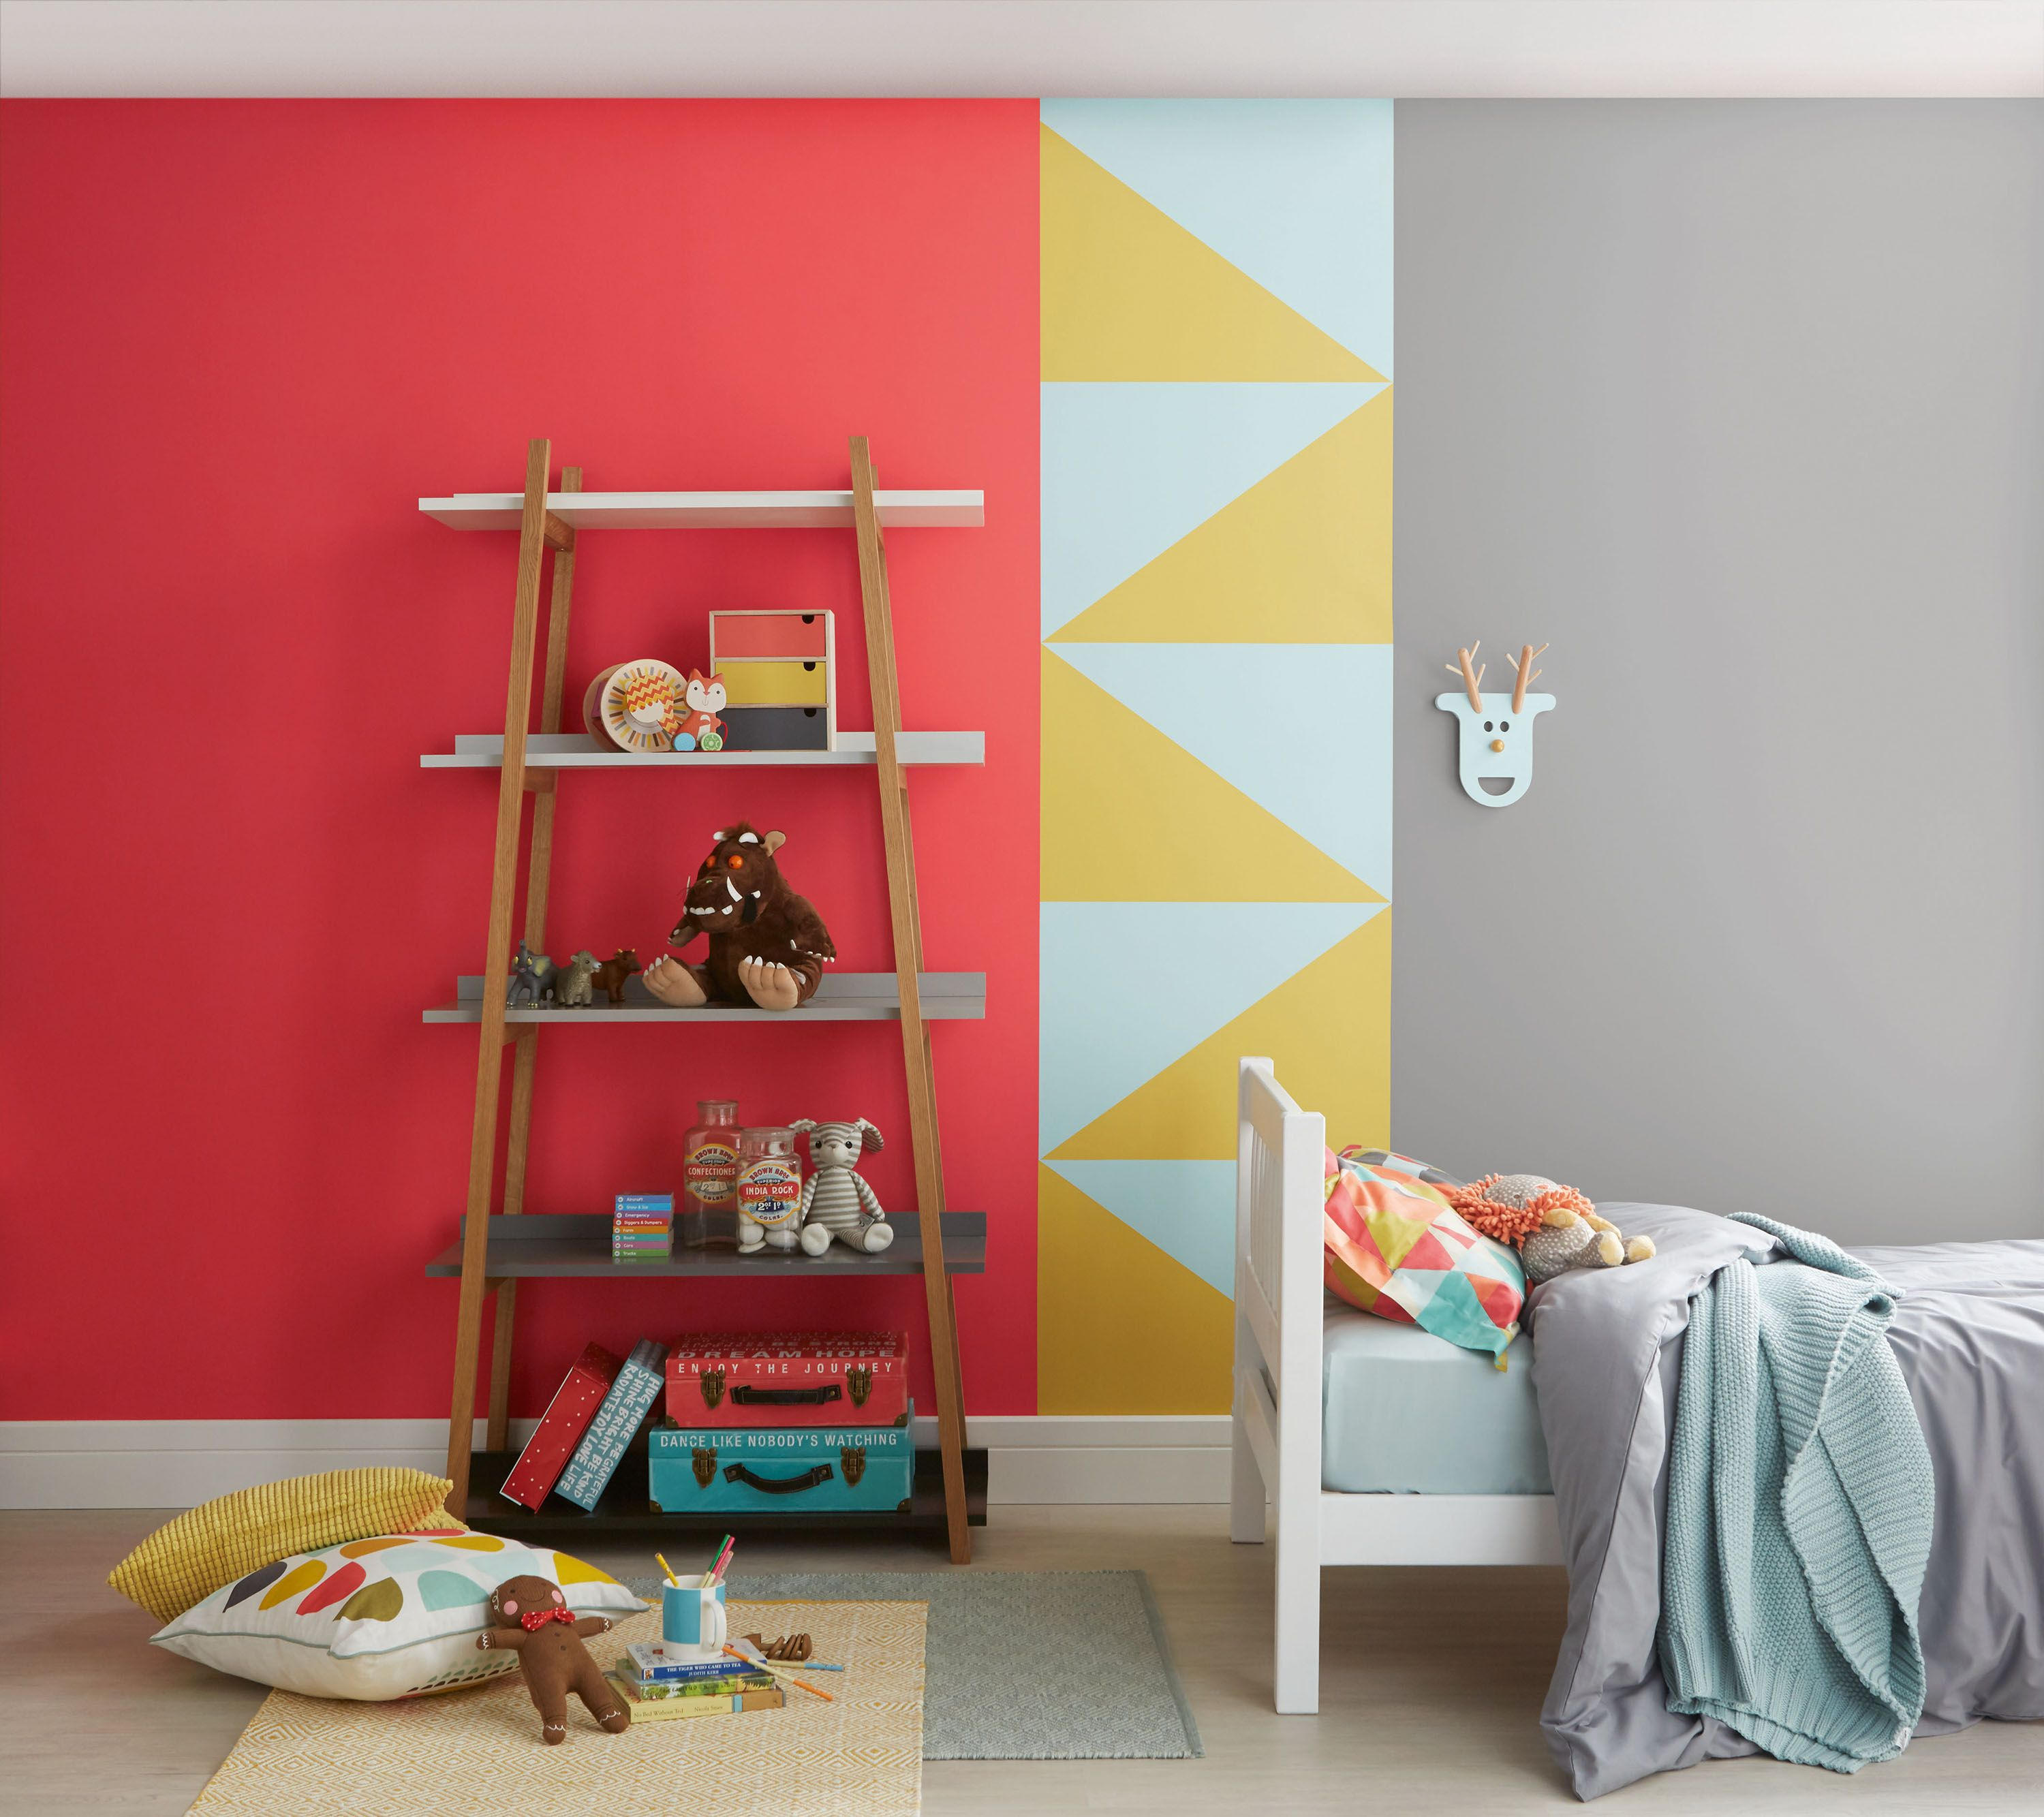 Paint colour schemes for kids' bedrooms: 15 bright ideas images